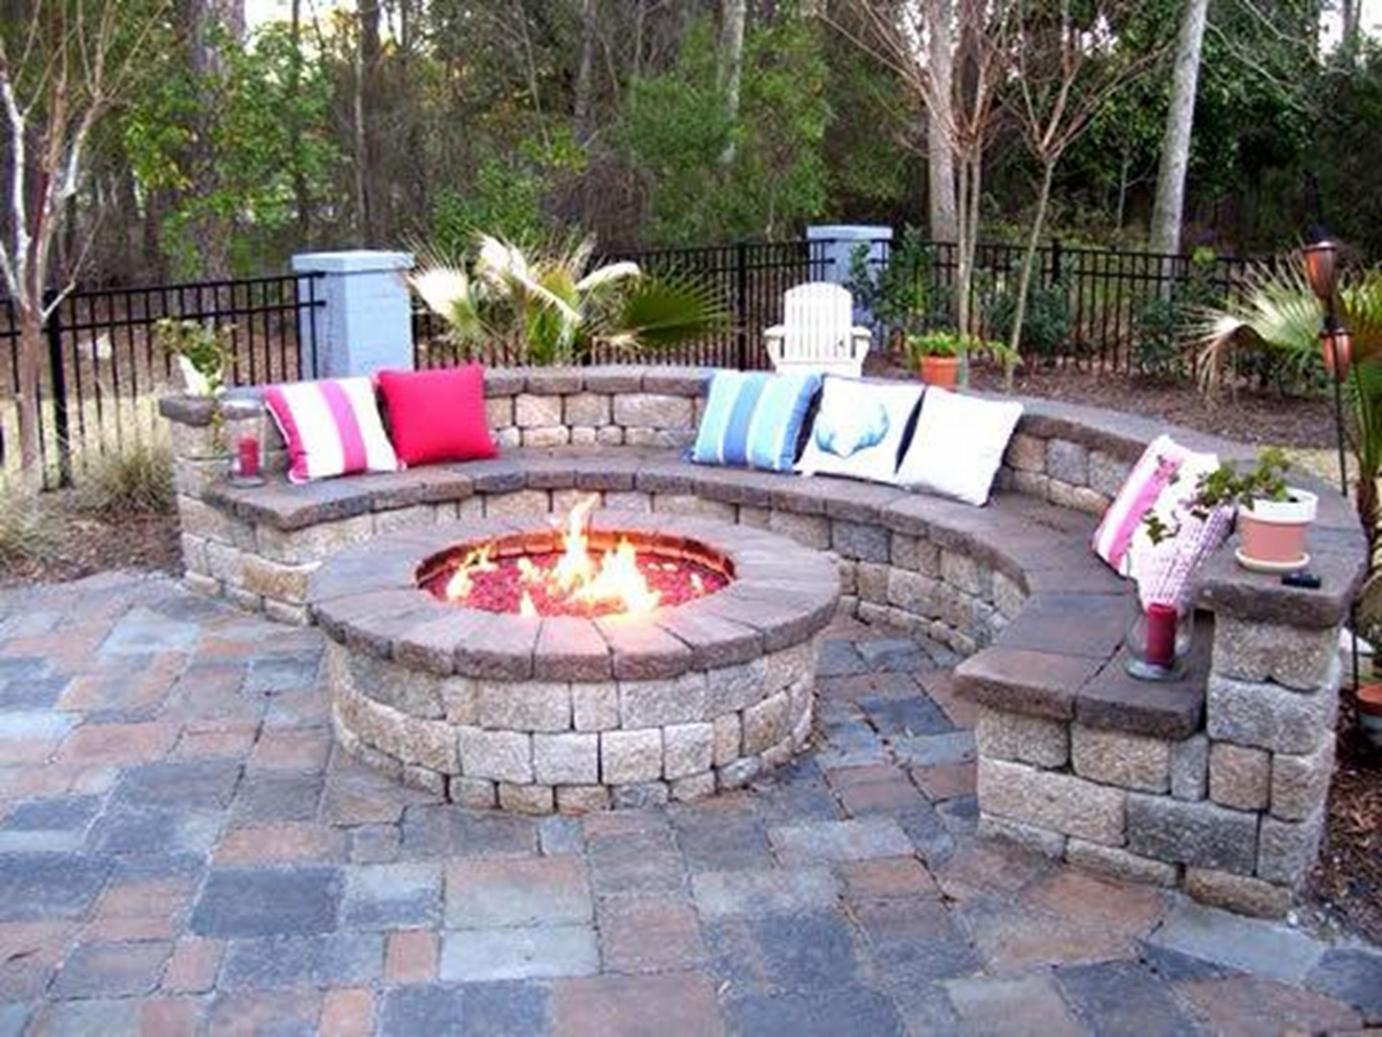 backyard design ideas with pool backyard design ideas with fire pit - Backyard Design Ideas